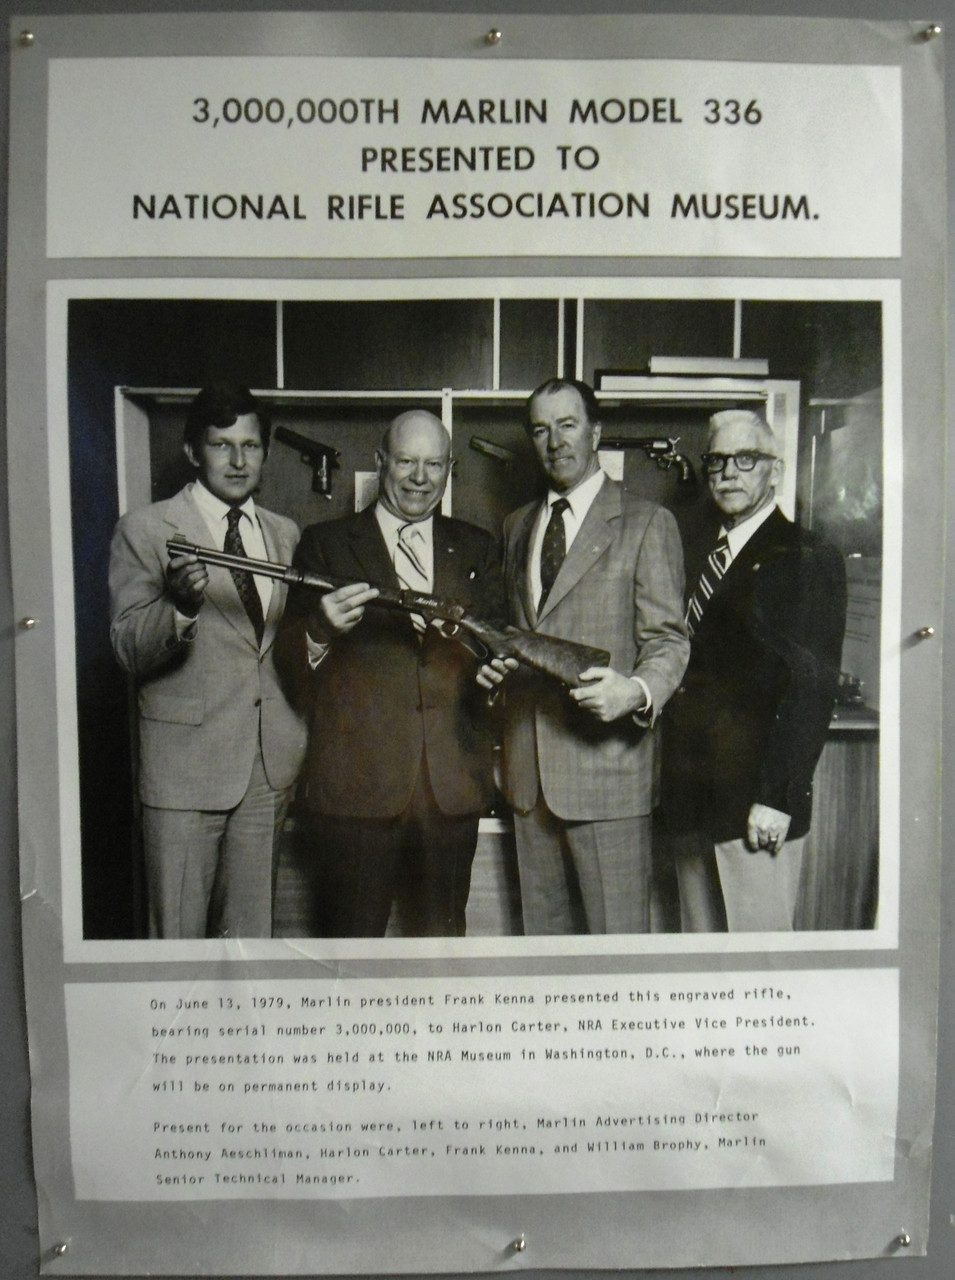 3,000,000th Marlin Presented to NRA